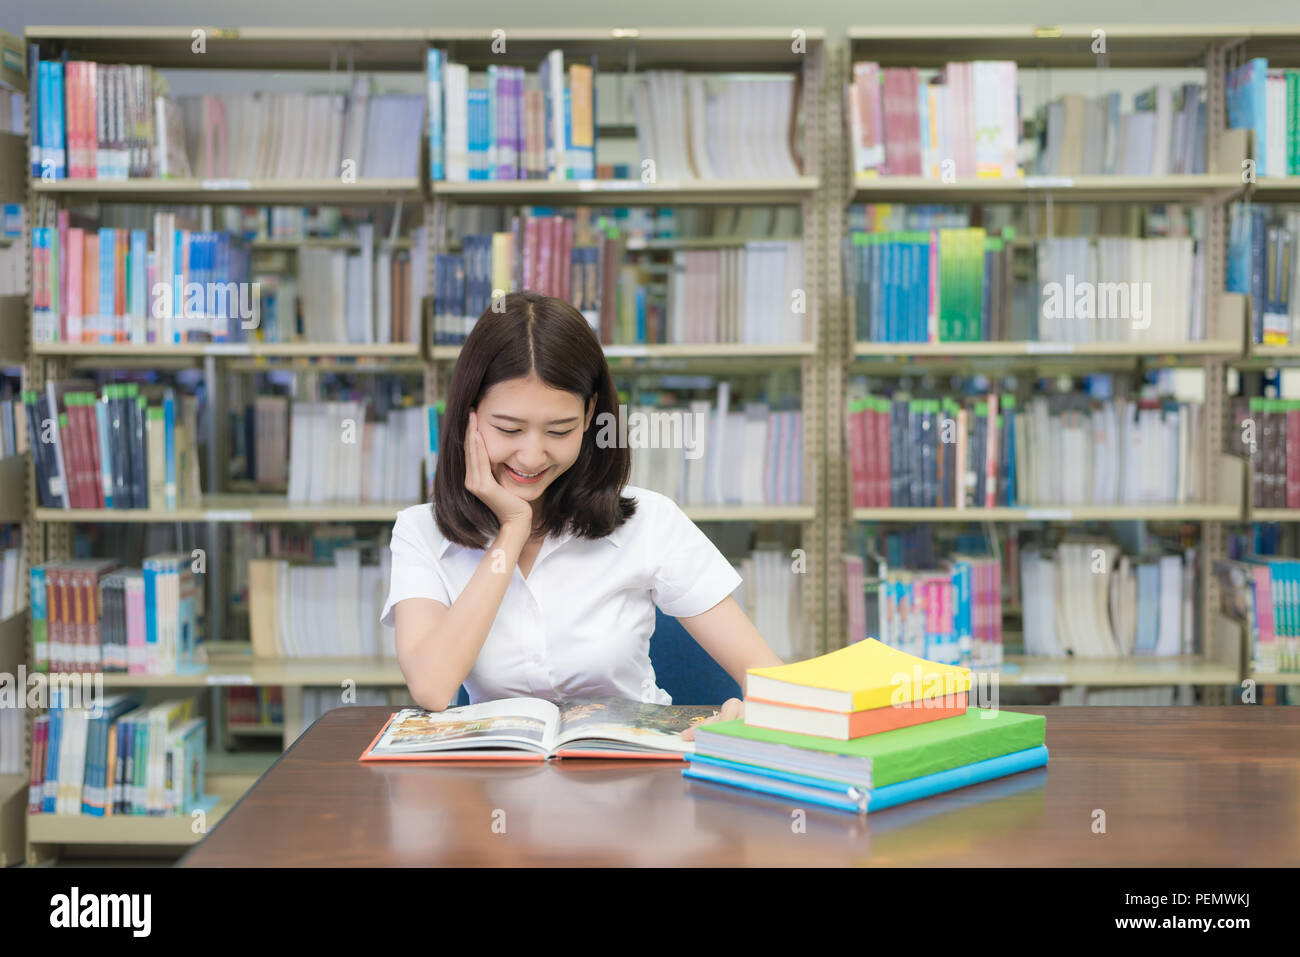 Asian student reading book in library at university. - Stock Image